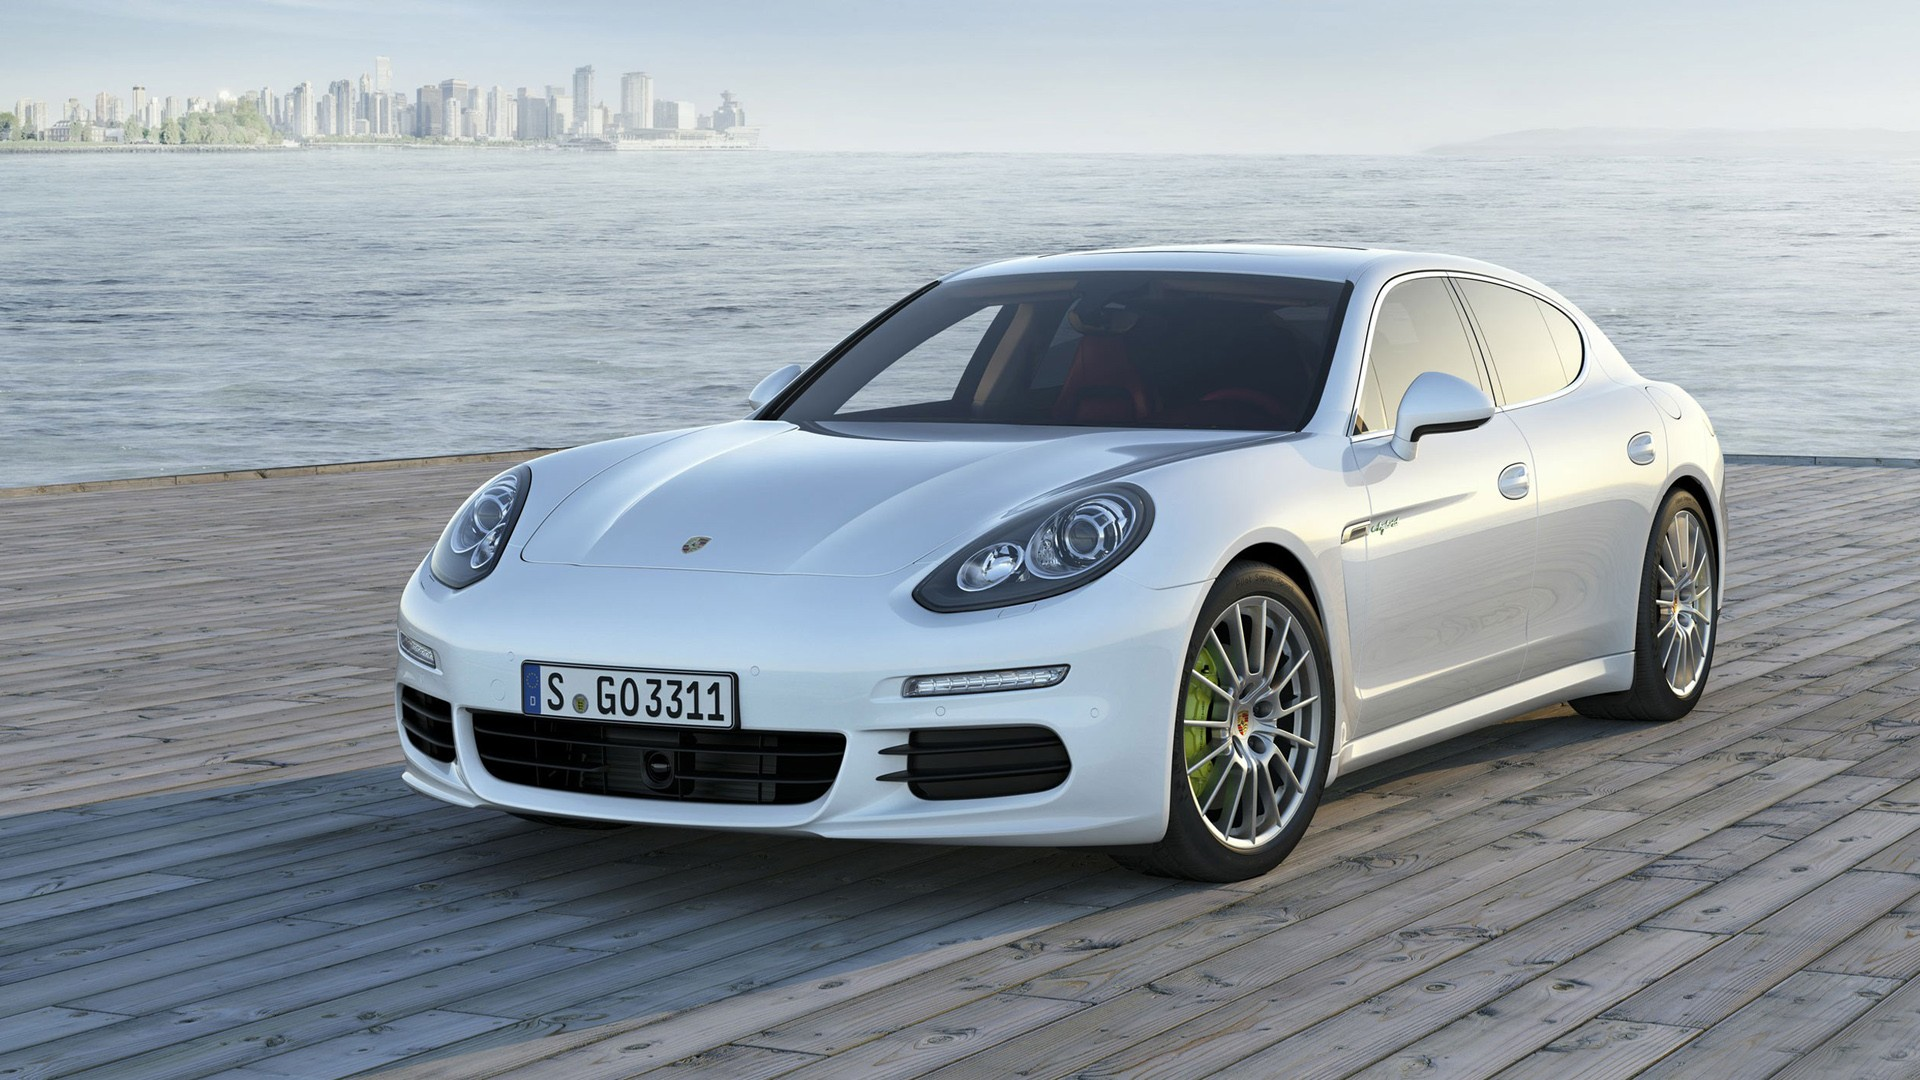 2014 porsche panamera wallpaper hd car wallpapers id 3364. Black Bedroom Furniture Sets. Home Design Ideas